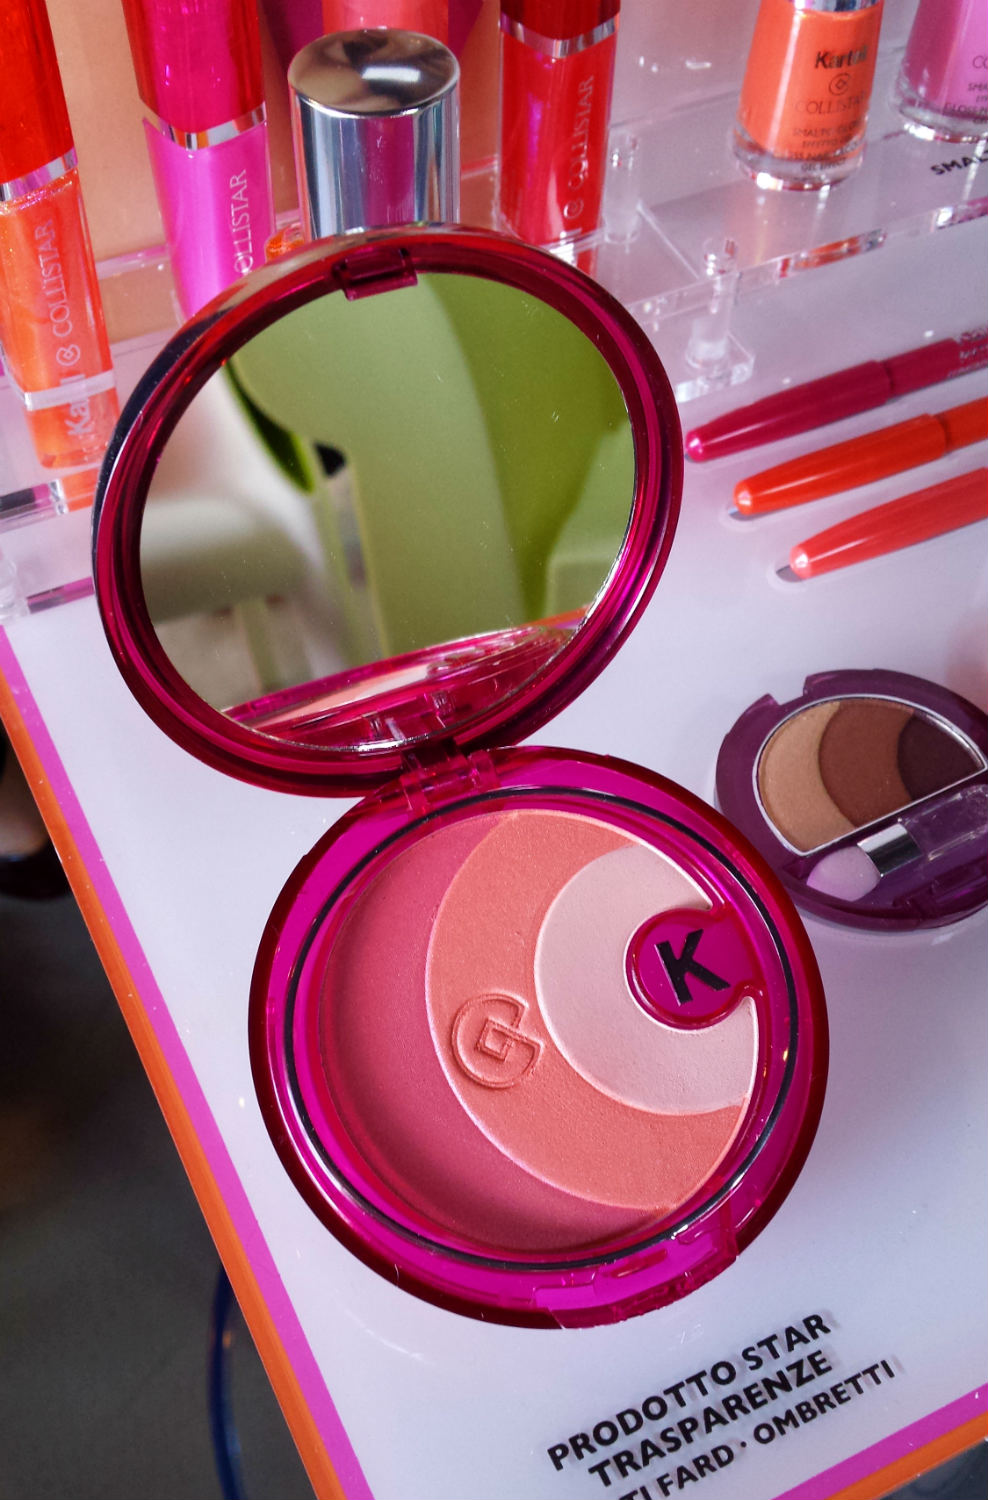 Collistar & Kartell - Multi Blush & Eyeshadows